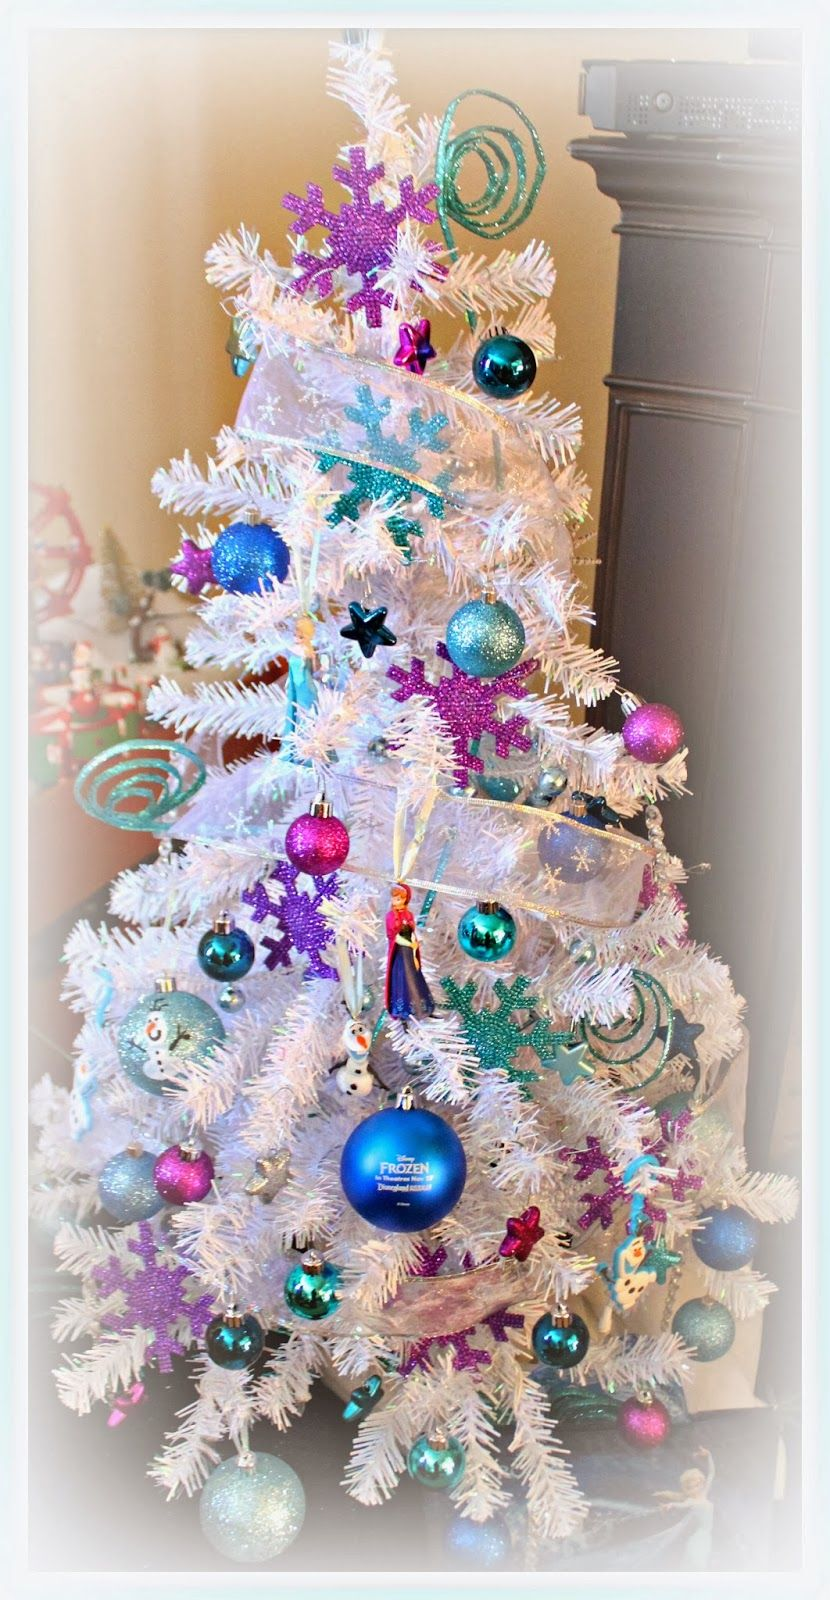 Disney Frozen Christmas Tree | Disney's FROZEN | Pinterest ...